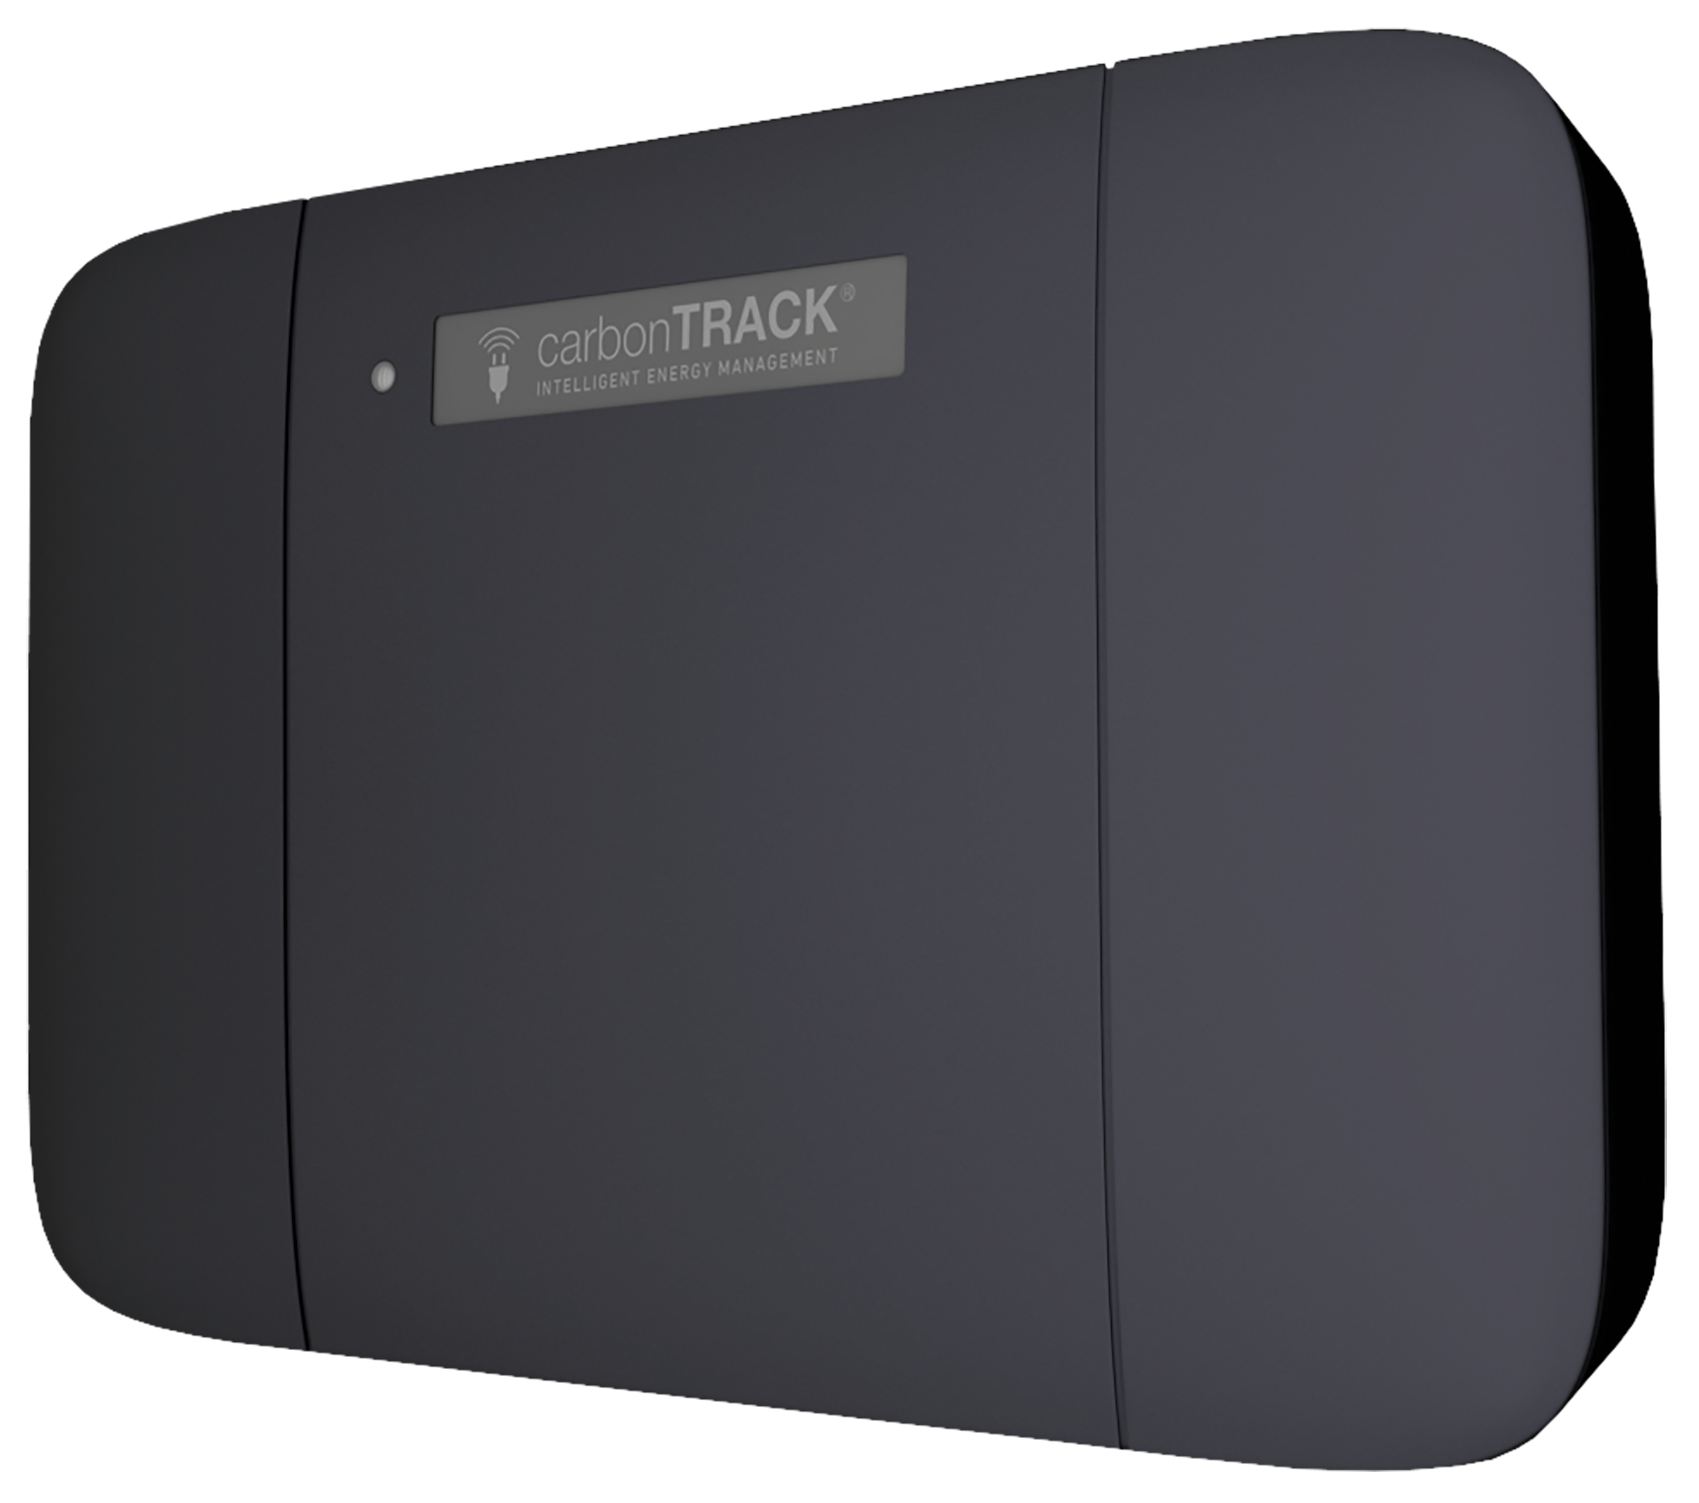 carbonTRACK Energy Management System